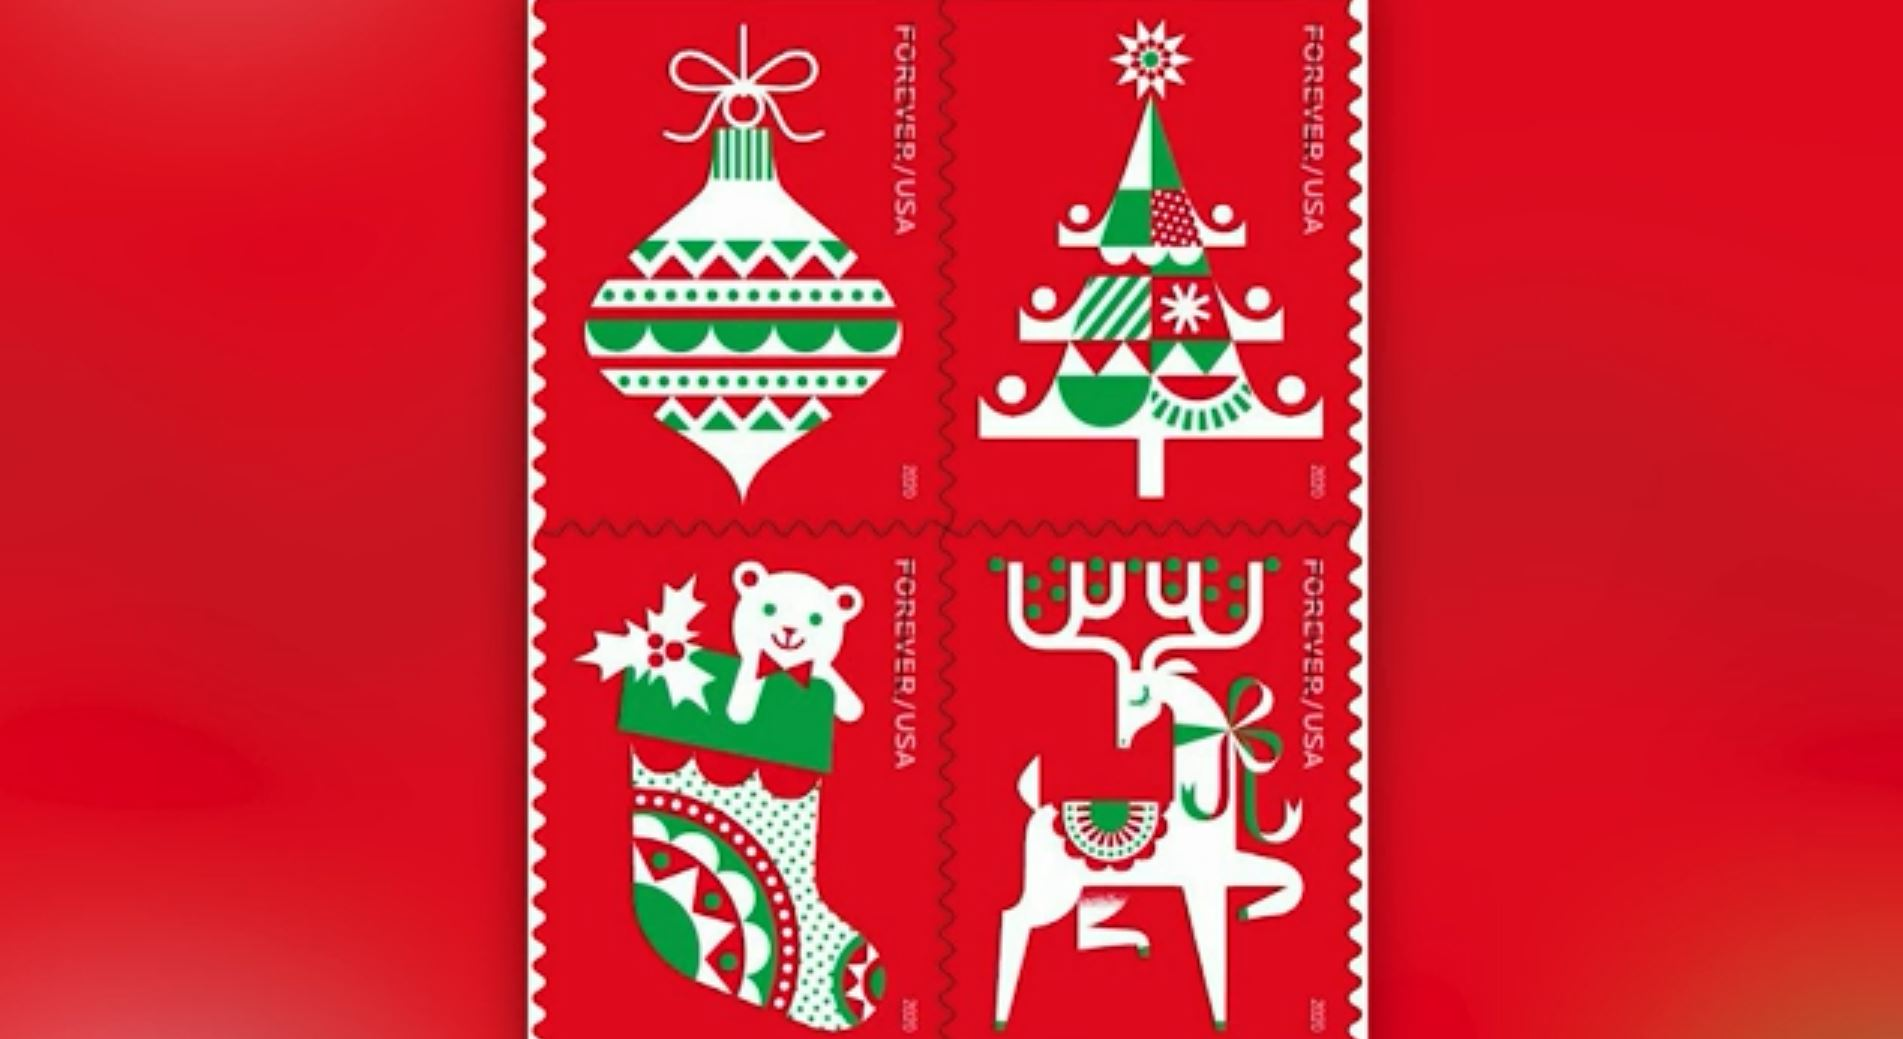 Post Office Christmas Stamps 2020 U.S. Postal Service unveiled five new forever stamps | WHNT.com